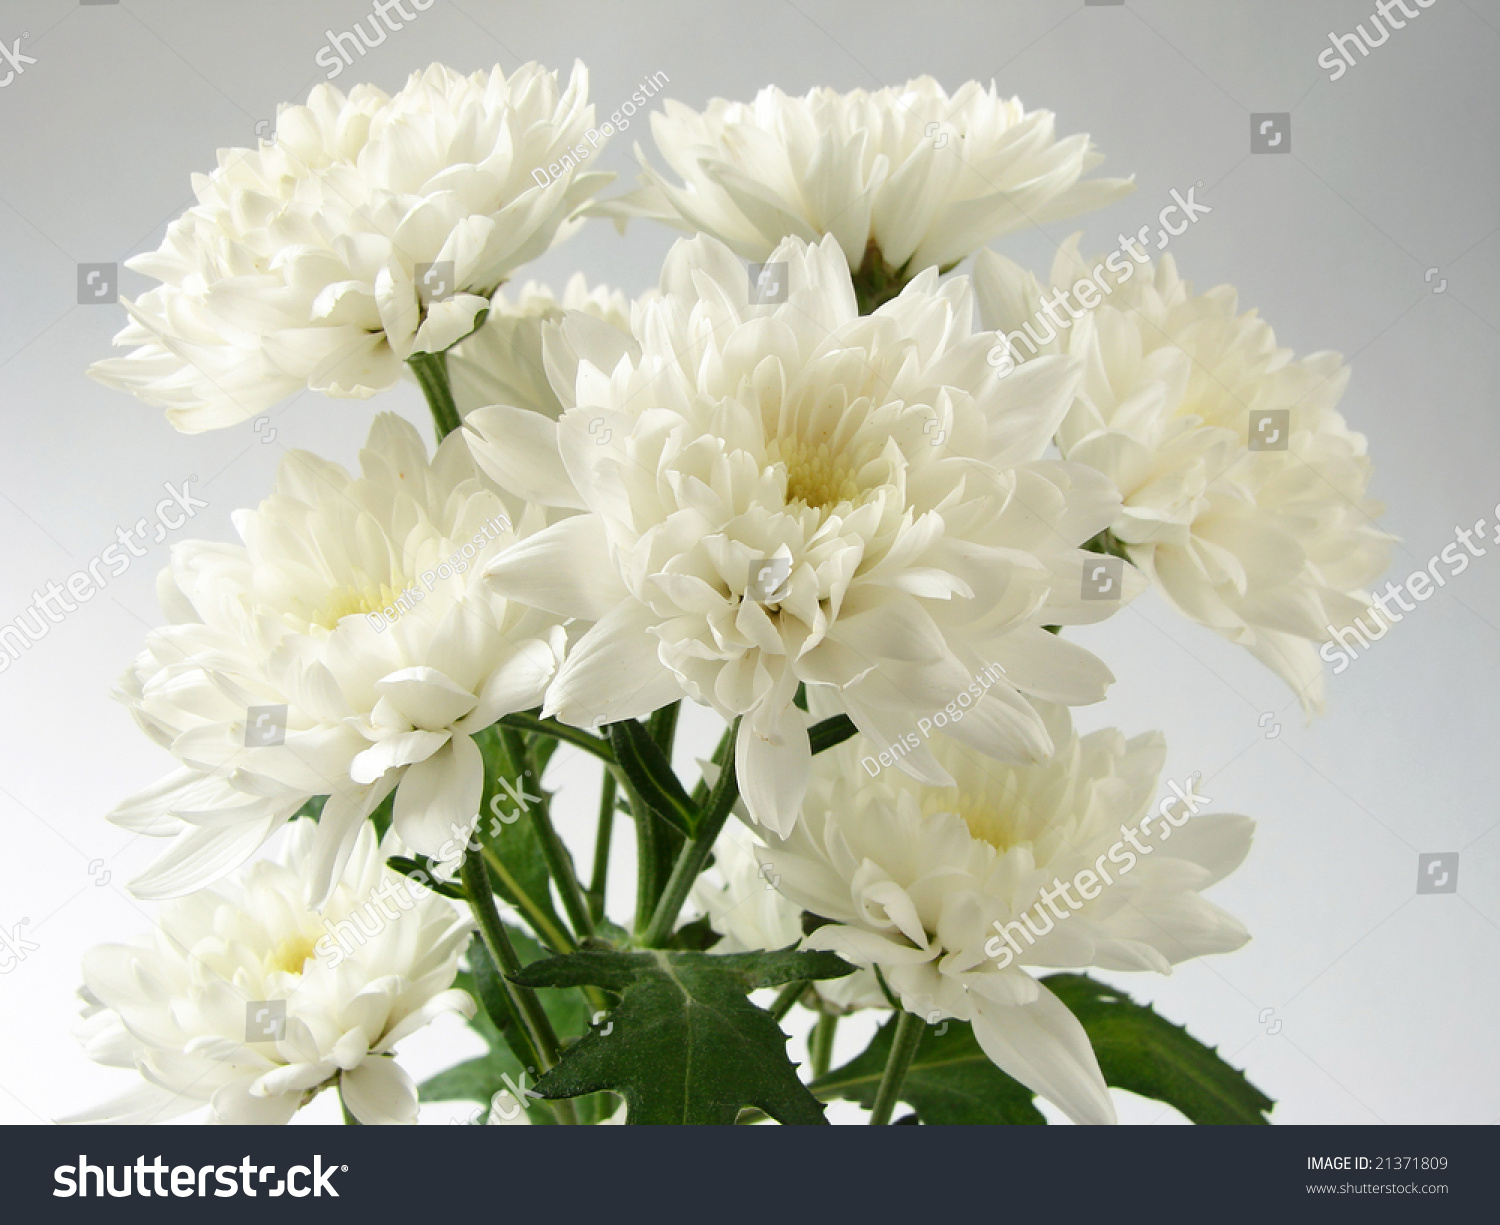 White Chrysanthemum Centerpiece : White chrysanthemum centerpiece